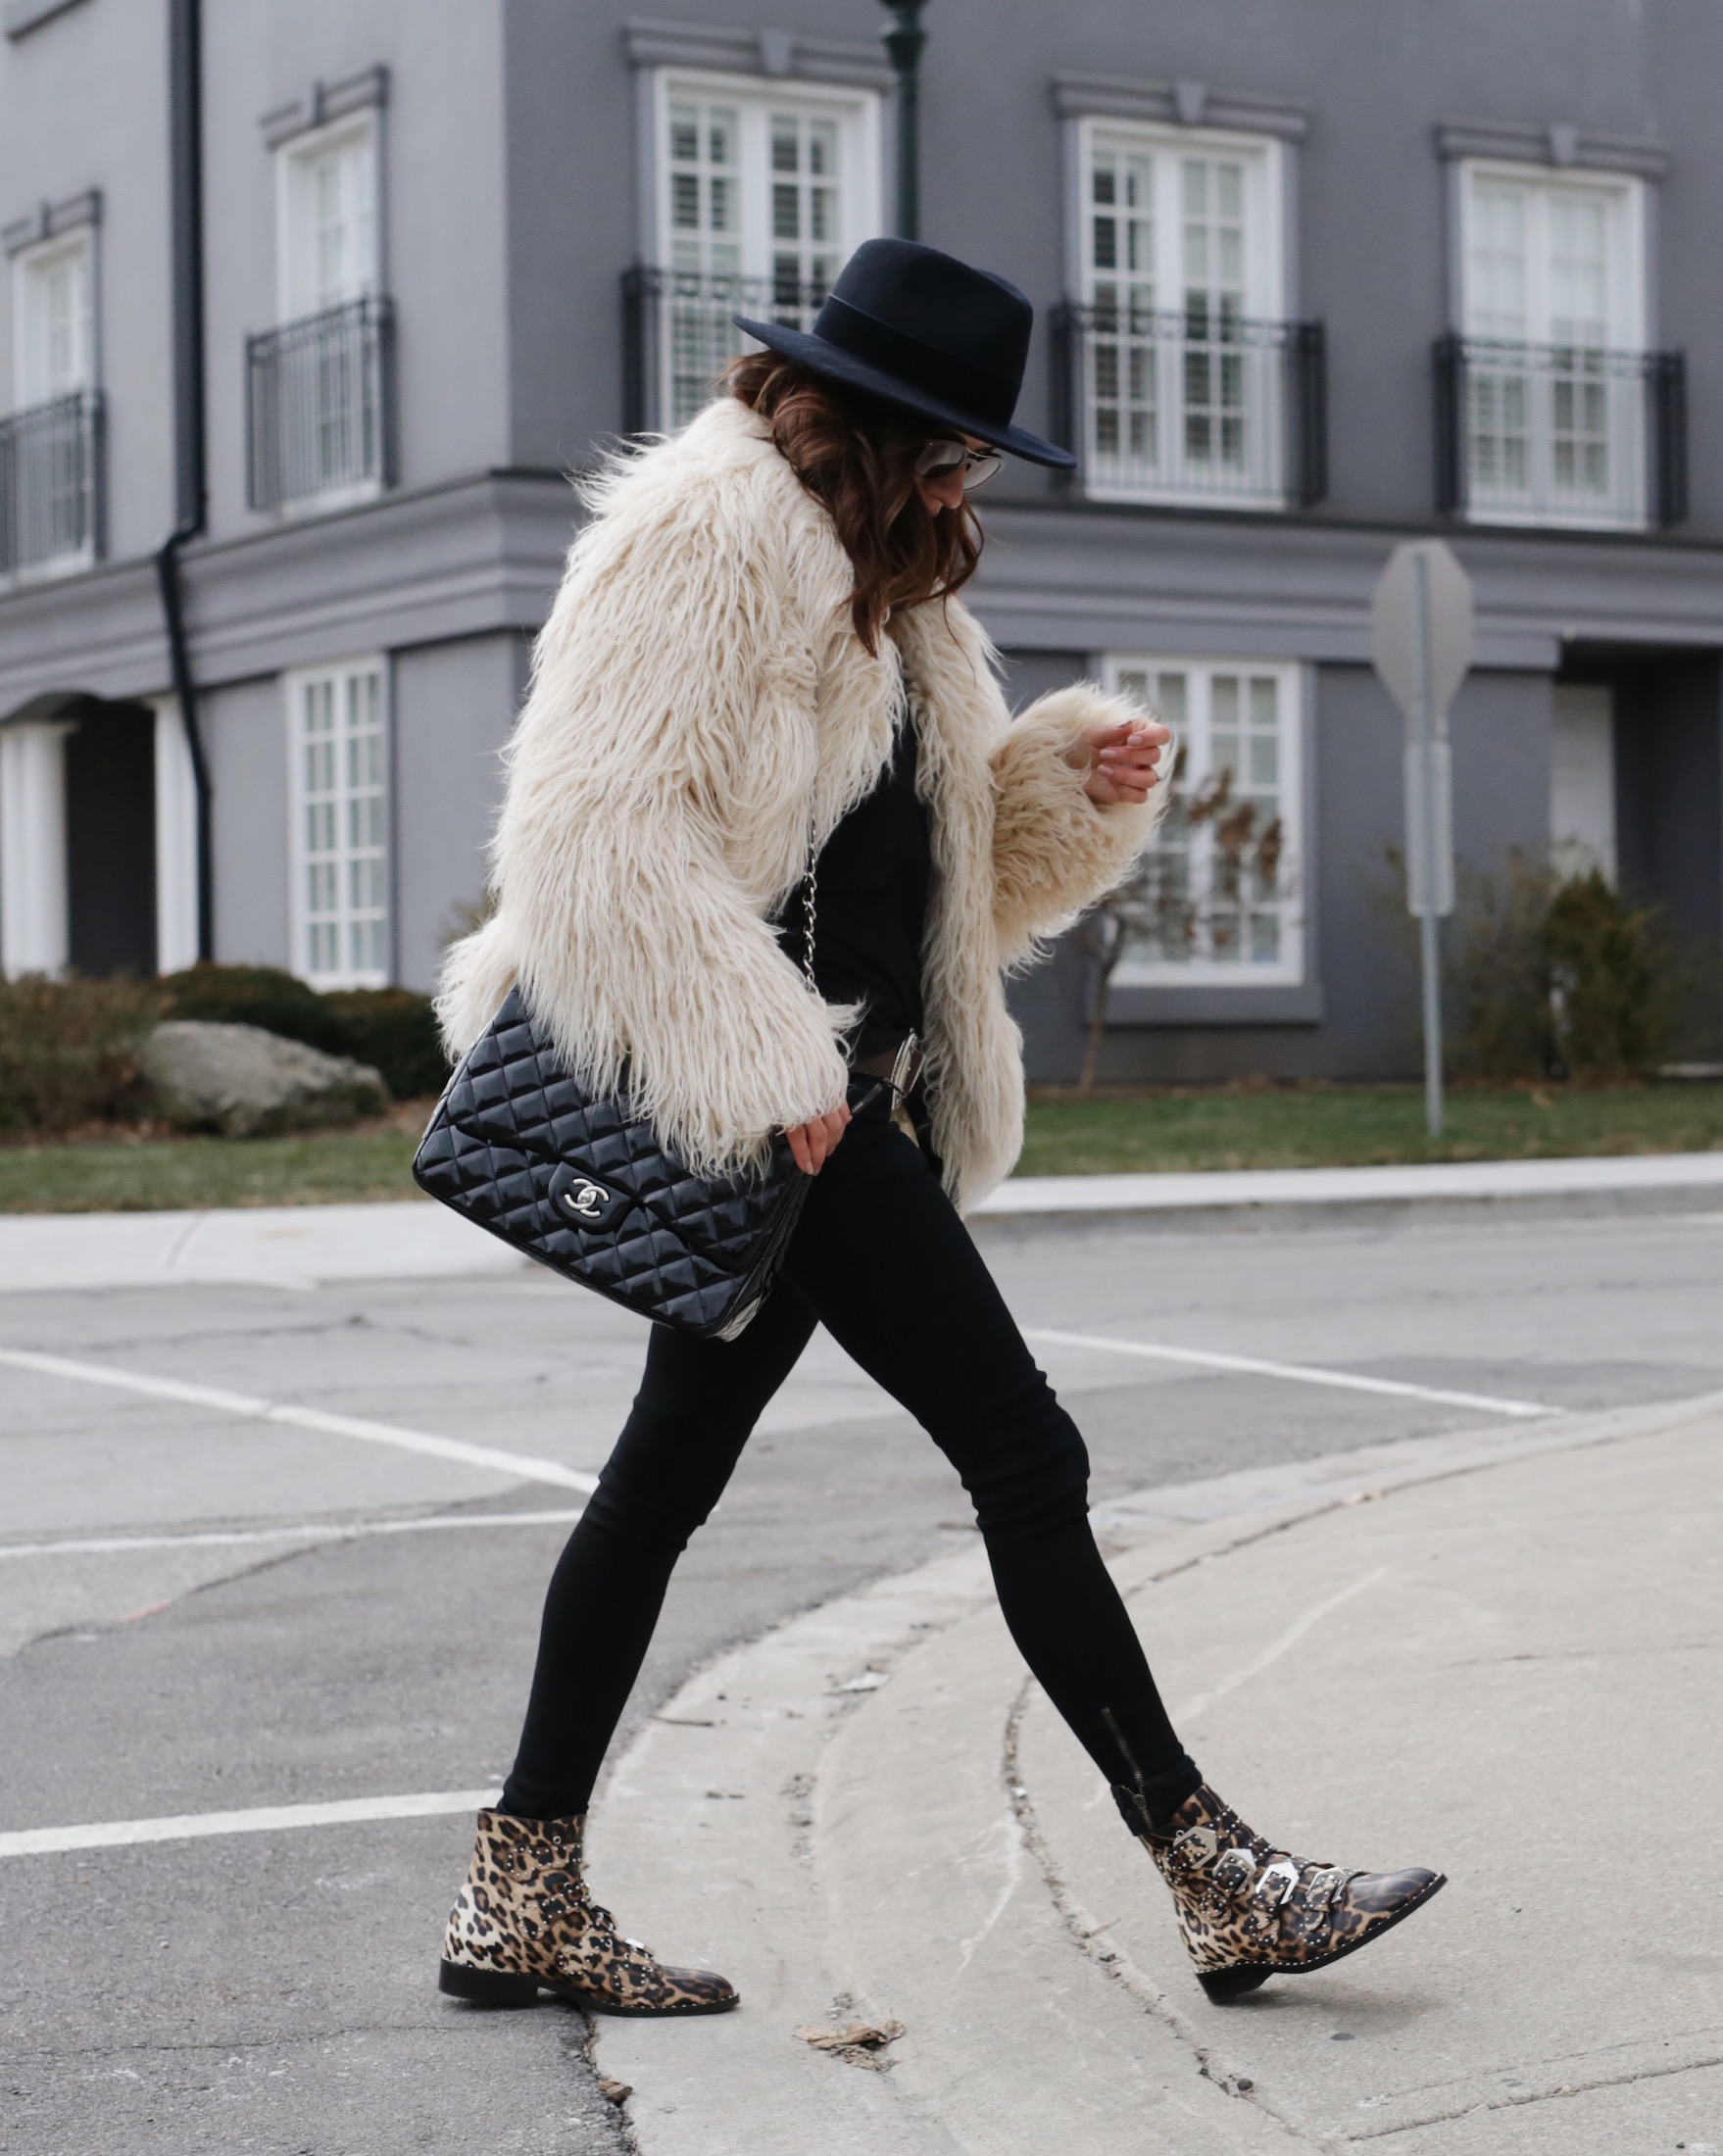 givenchy studded leopard boots, faux fur jacket and patent leather chanel bag - woahstyle.com_5625.JPG